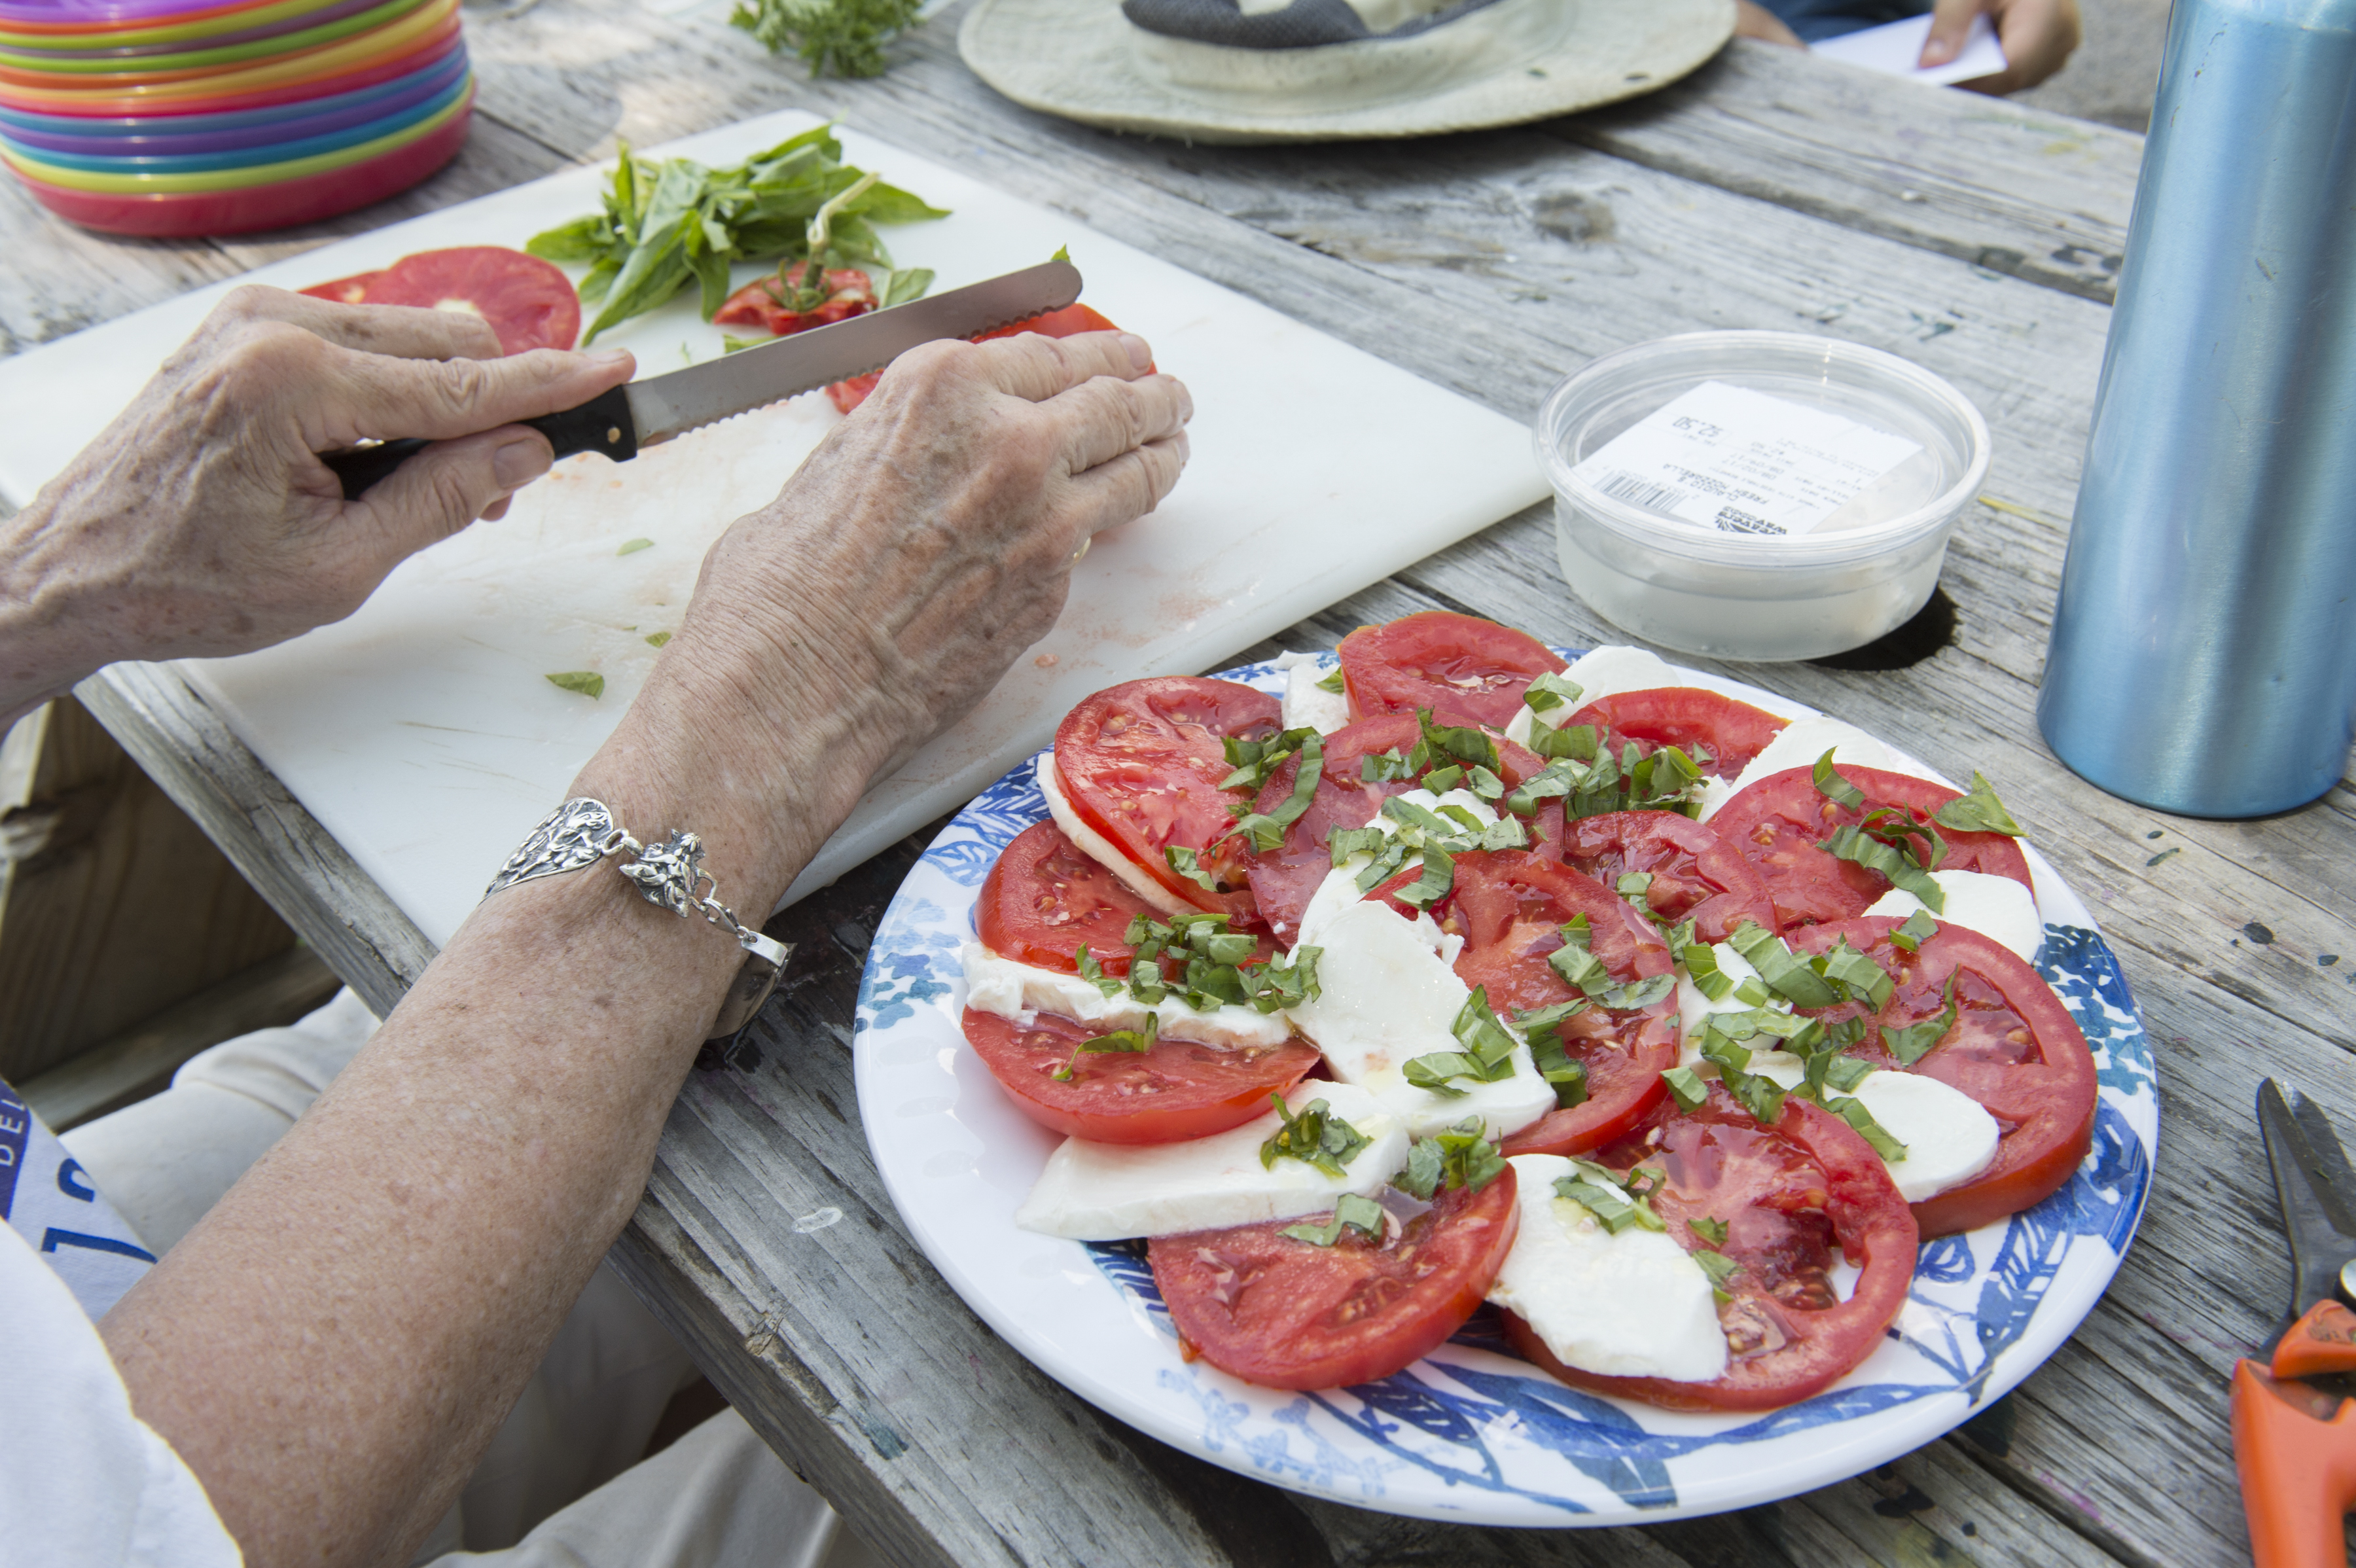 Margaret Guthrie, a Hope Farm volunteer cuts tomatoes for a tomato, basil and mozzarella salad at Hope Farm in Philadelphia. (Jonathan Wilson / For the Inquirer)